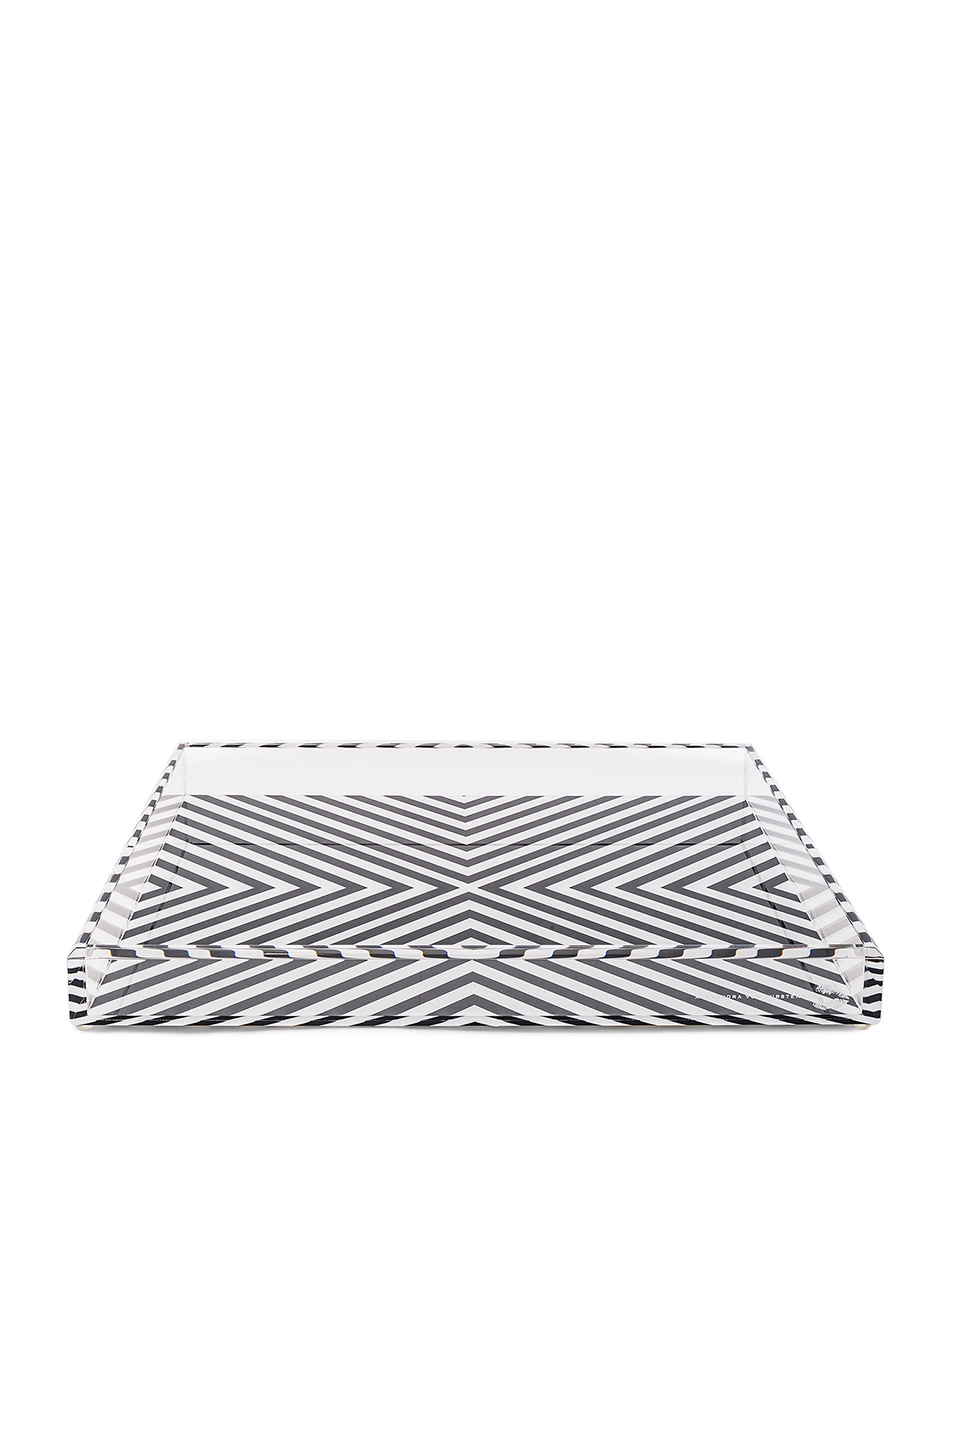 Alexandra Von Furstenberg Cocktail Accent Tray in Black,White,Geometric Print